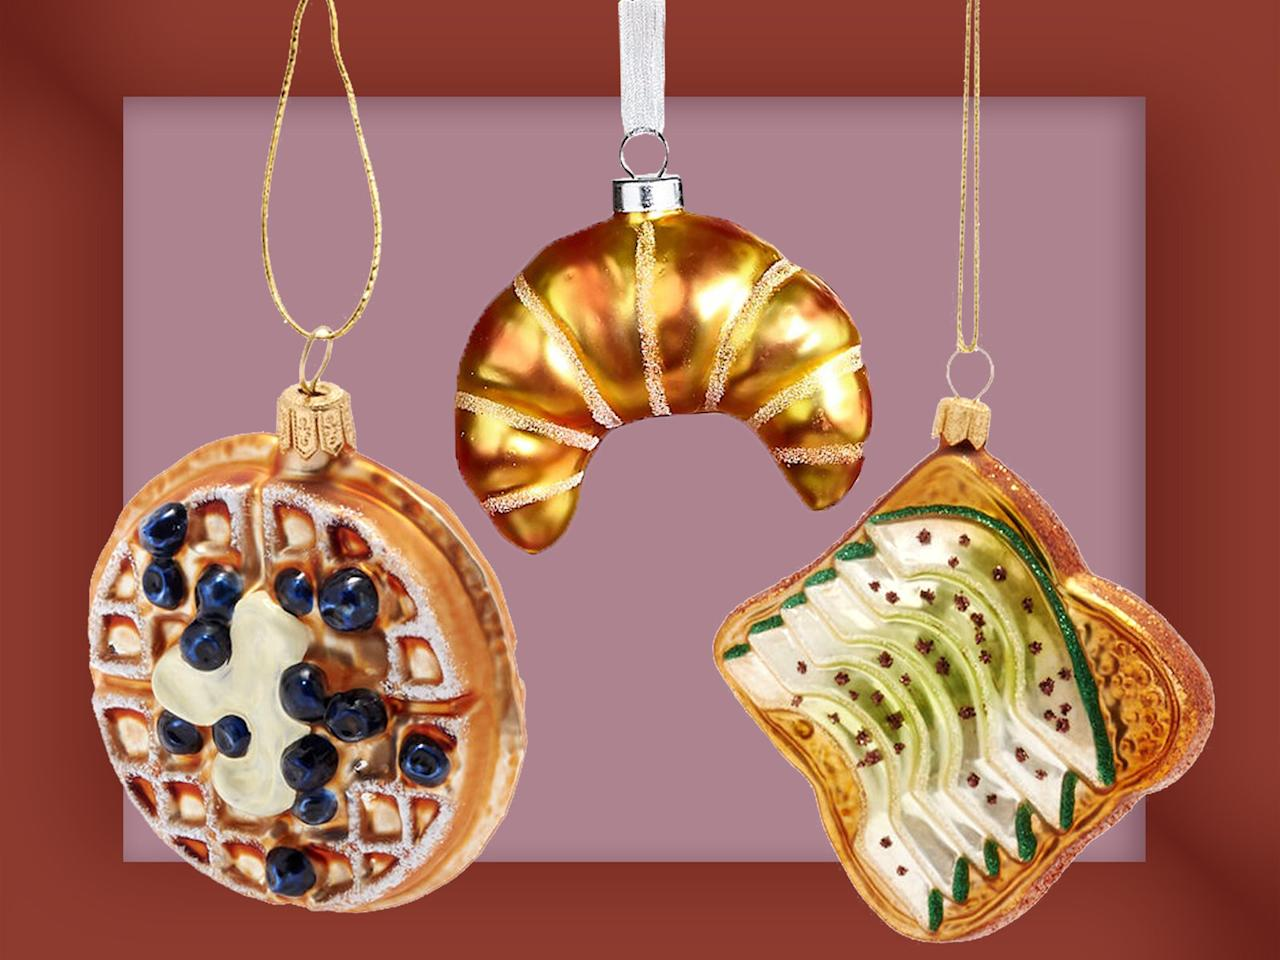 """<p>If you have a favorite breakfast food, there's probably an ornament for it. There's eggs, croissants, and blueberry waffles—even trendy dishes like avocado toast and <i>overnight oats</i>. Grab a few and you'll have the hippest brunch-themed tree around. </p>  <p>Overnight Oats Glass Ornament, $34 at <a href=""""http://www.anrdoezrs.net/links/7923151/type/dlg/sid/FW%2Cfood-ornaments-breakfast-ft-blog1119.jpg%2Cscrowder805%2C%2CIMA%2C1387696%2C201911%2CI/http://www.shopterrain.com/products/overnight-oats-glass-ornament"""" target=""""_blank"""">shopterrain.com</a> </p> <p>Crate of Eggs Glass Ornament, $13 at <a href=""""http://surlatable.aiy7.net/c/249354/635796/10190?subId1=FW%2Cfood-ornaments-breakfast-ft-blog1119.jpg%2Cscrowder805%2C%2CIMA%2C1387696%2C201911%2CI&u=http%3A%2F%2Fwww.surlatable.com%2Fpro-5505201-orn-crate-eggs-ct%2F5505201.html"""" target=""""_blank"""">surlatable.com</a> </p> <p>Avocado Toast Glass Ornament, $25 at <a href=""""http://surlatable.aiy7.net/c/249354/635796/10190?subId1=FW%2Cfood-ornaments-breakfast-ft-blog1119.jpg%2Cscrowder805%2C%2CIMA%2C1387696%2C201911%2CI&u=http%3A%2F%2Fwww.surlatable.com%2Favocada-toast-glass-ornament%2FPRO-3500592.html"""" target=""""_blank"""">surlatable.com</a></p> <p>Blueberry Waffle Glass Ornament, $13 at <a href=""""http://surlatable.aiy7.net/c/249354/635796/10190?subId1=FW%2Cfood-ornaments-breakfast-ft-blog1119.jpg%2Cscrowder805%2C%2CIMA%2C1387696%2C201911%2CI&u=http%3A%2F%2Fwww.surlatable.com%2Fpro-5505268-orn-waffle-blubry-ct%2FPRO-5505268.html"""" target=""""_blank"""">surlatable.com</a></p> <p>Chocolate Pancake Stack Glass Ornament, $11 (was $18) at <a href=""""https://click.linksynergy.com/deeplink?id=93xLBvPhAeE&mid=13867&murl=http%3A%2F%2Fwww.bloomingdales.com%2Fshop%2Fproduct%2Fbloomingdales-chocolate-pancake-stack-glass-ornament-100-exclusive%3FID%3D3334545&u1=FW%2Cfood-ornaments-breakfast-ft-blog1119.jpg%2Cscrowder805%2C%2CIMA%2C1387696%2C201911%2CI"""" target=""""_blank"""">bloomingdales.com</a></p> <p>Croissant Ornament, $8 at <a href=""""http://www.anrdo"""